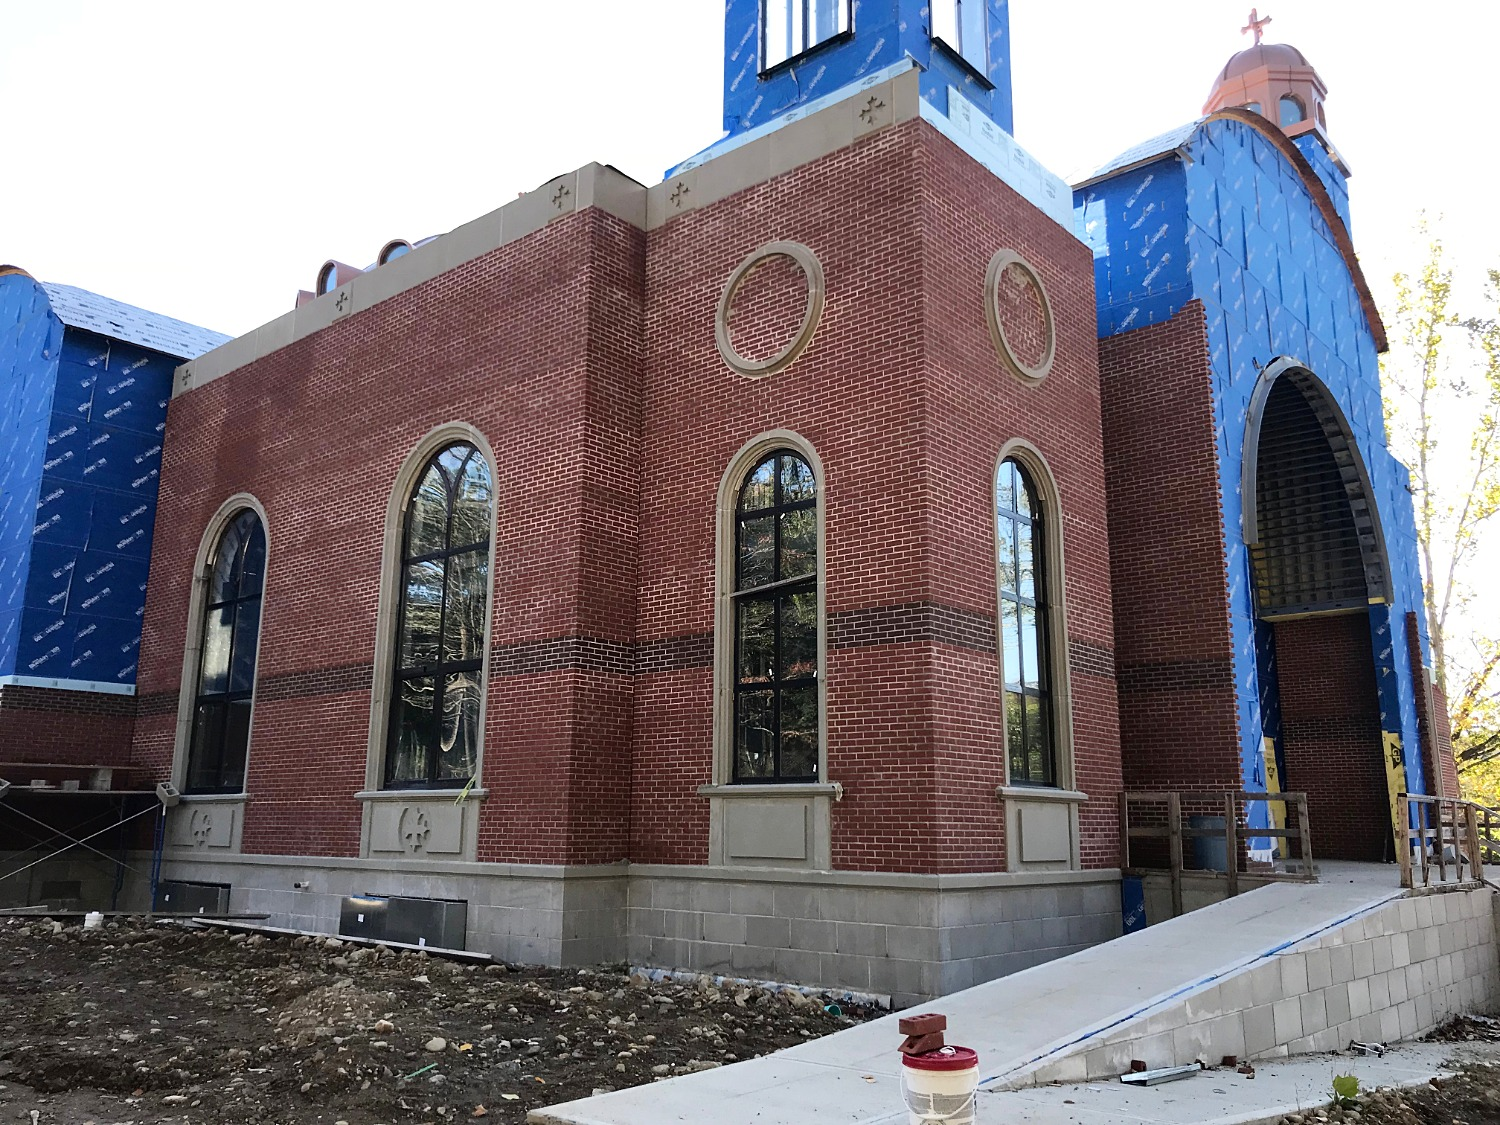 Progress on massive new church